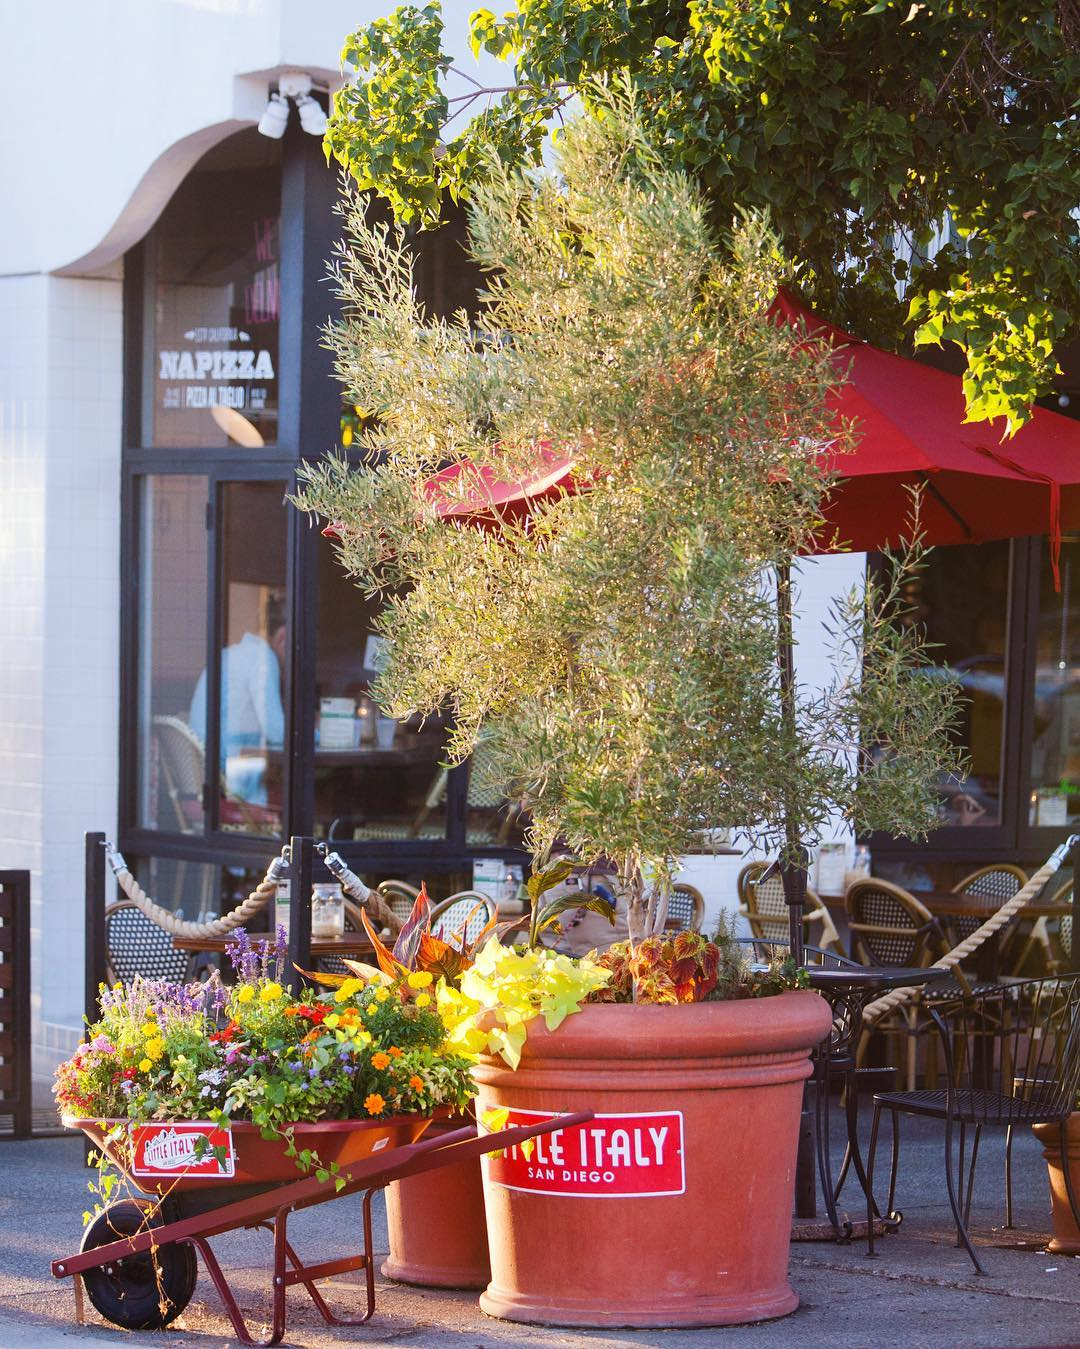 Little Italy San Diego travel and restaurant guide | Girlfriend is Better